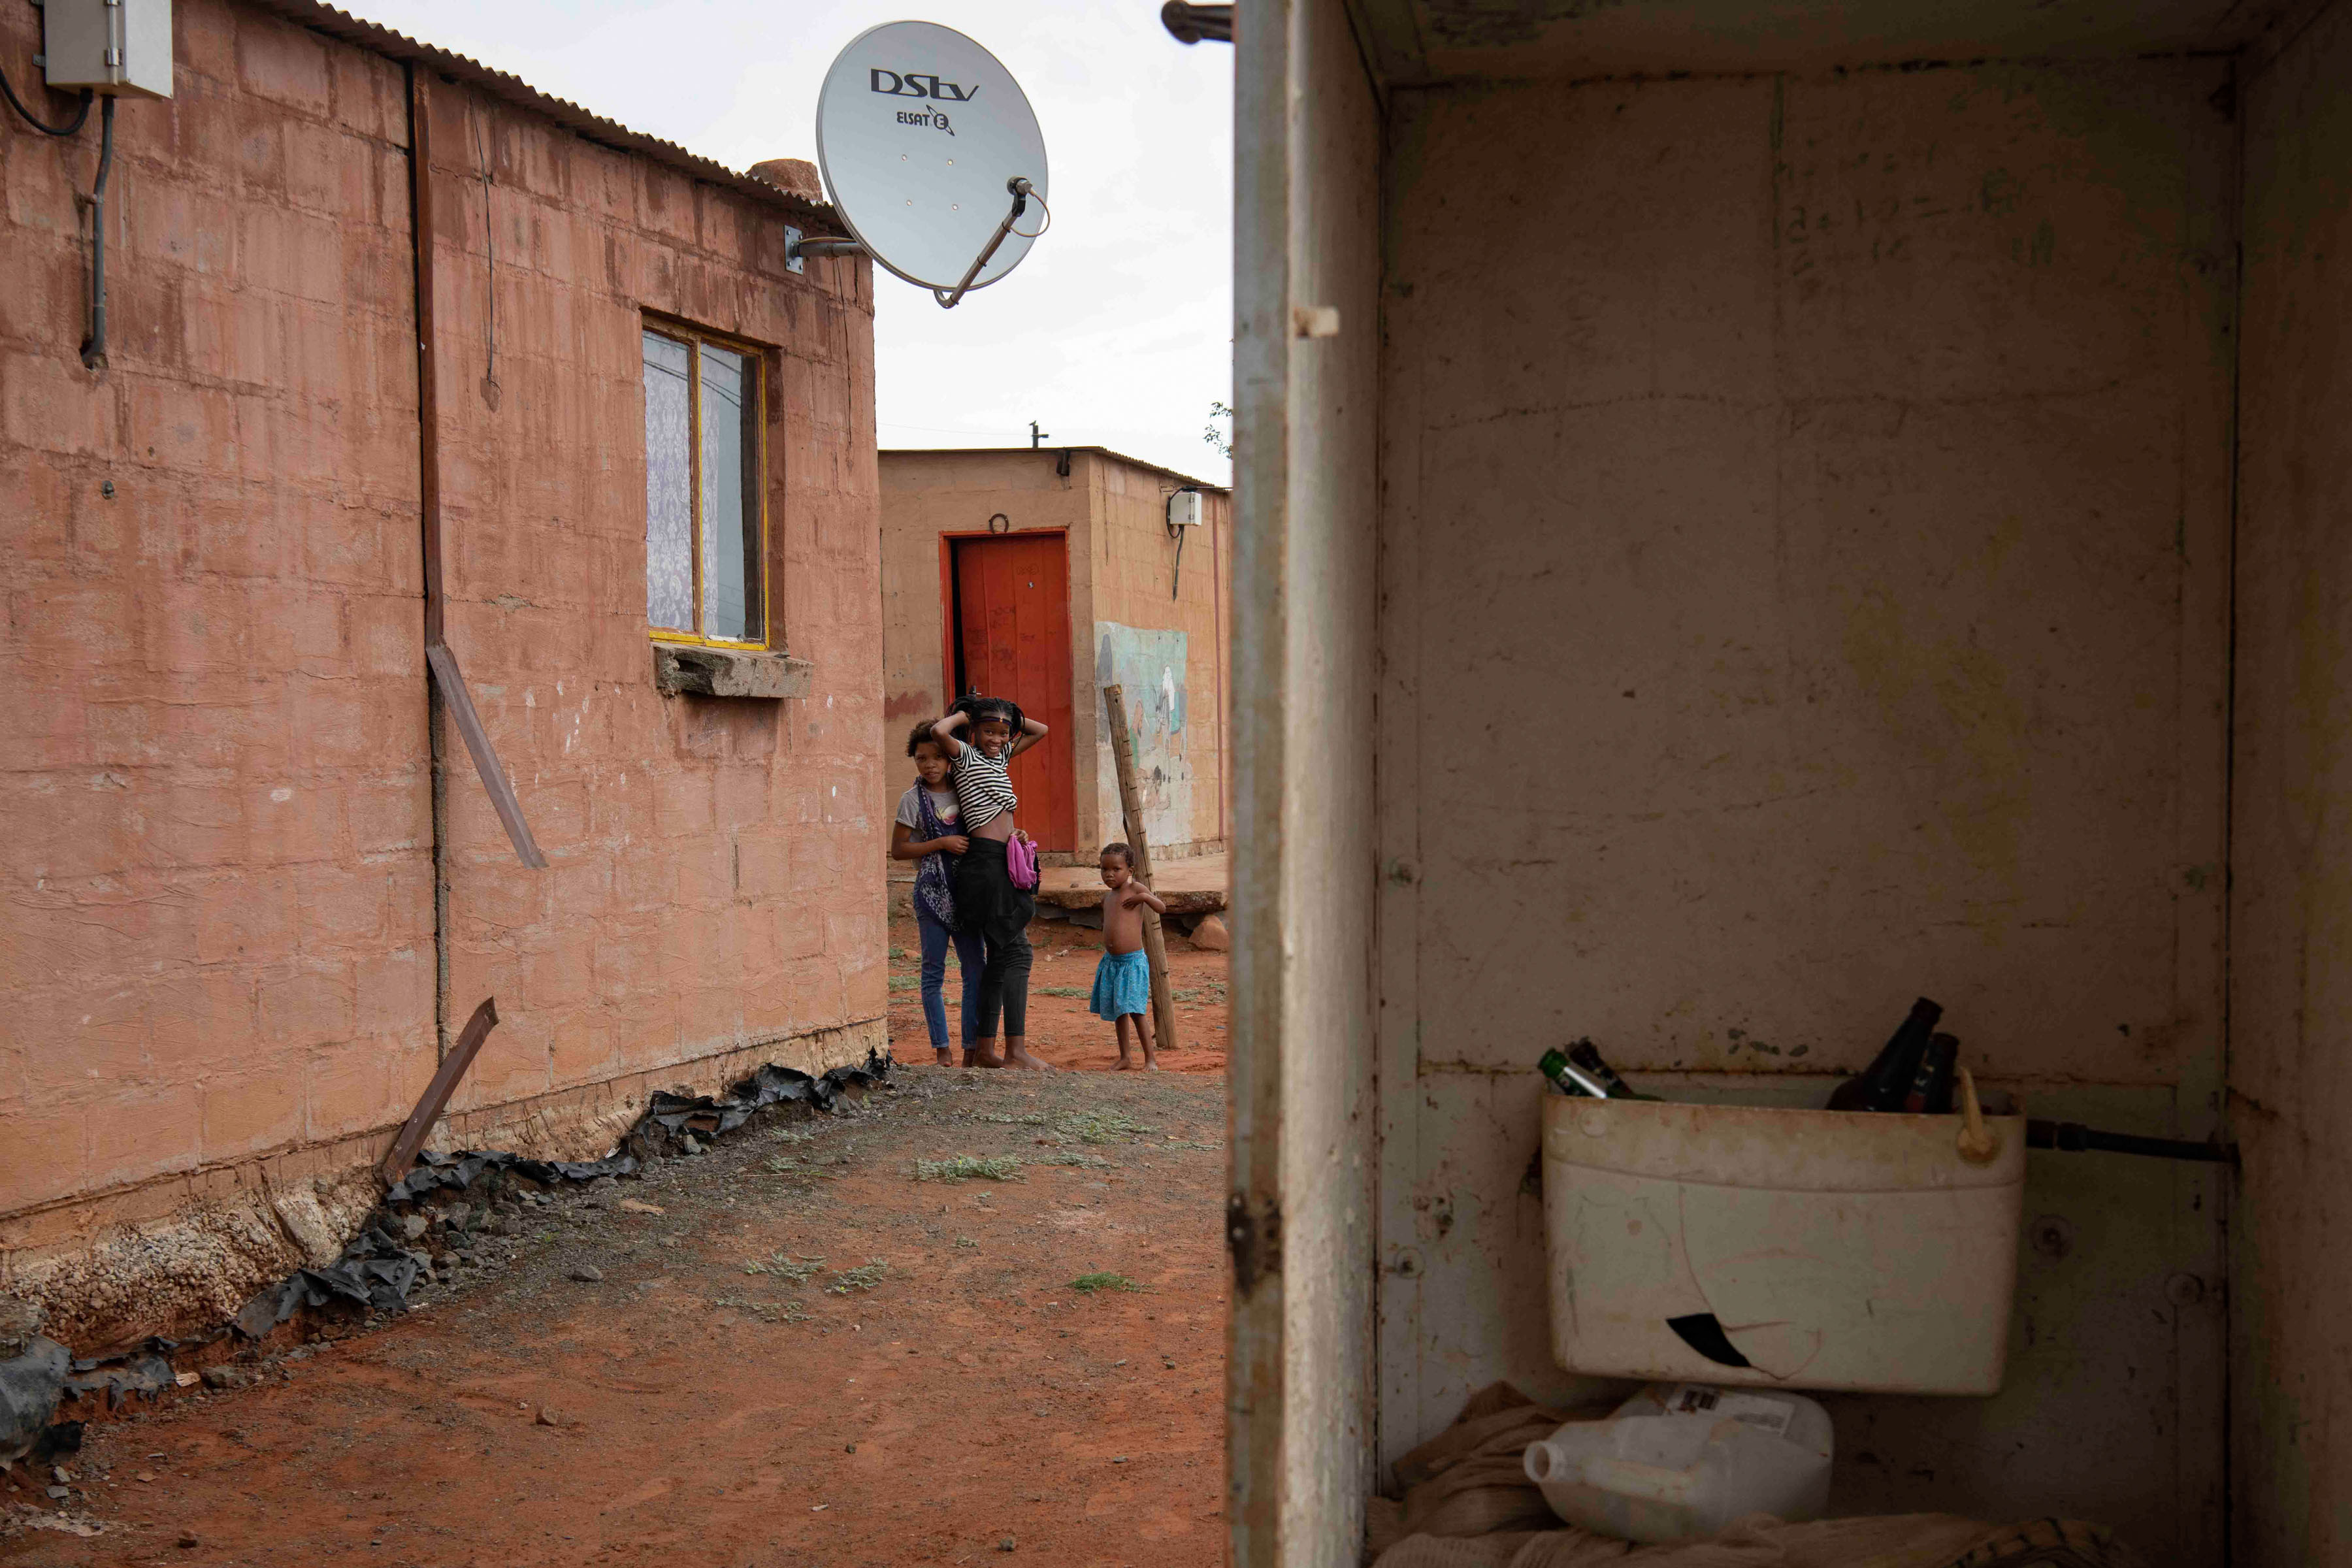 8 January 2020: Platfontein residents use 'bag toilets' as many of the facilities in the area are broken.